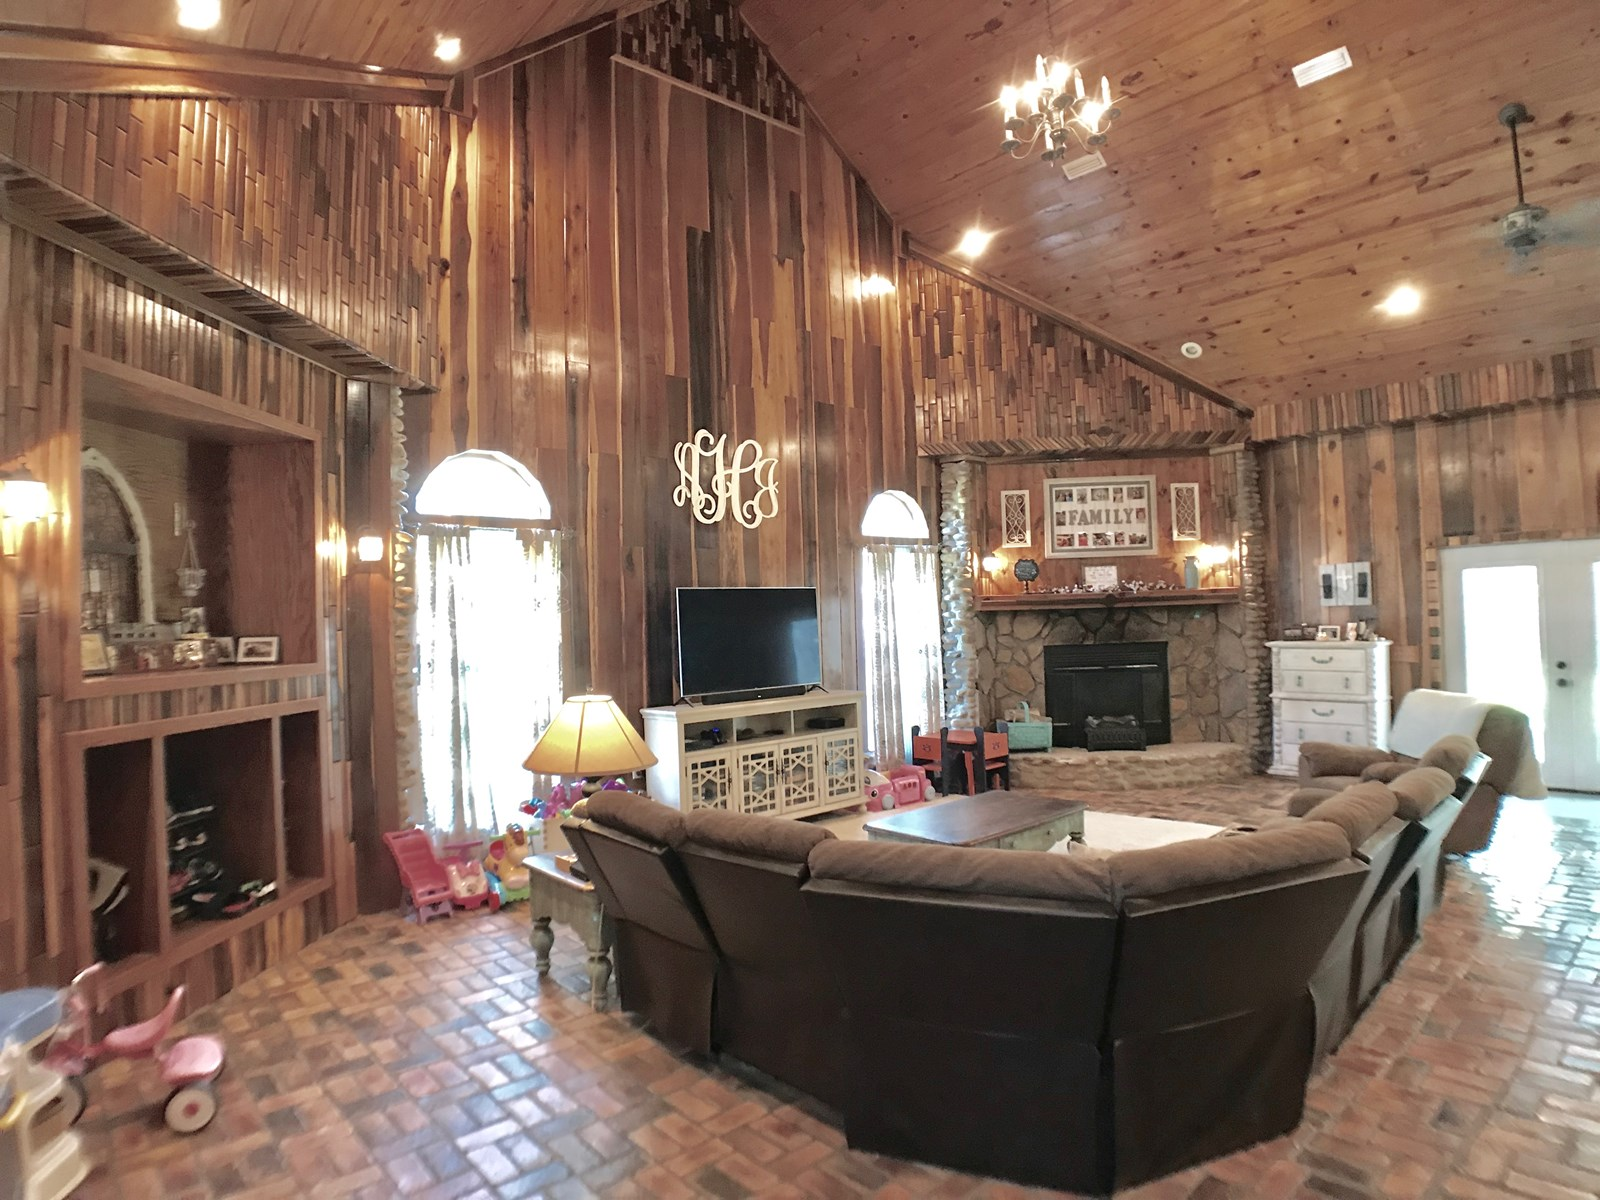 7B/4.5B Country Home for Sale on 2.65 acres Geneva, AL